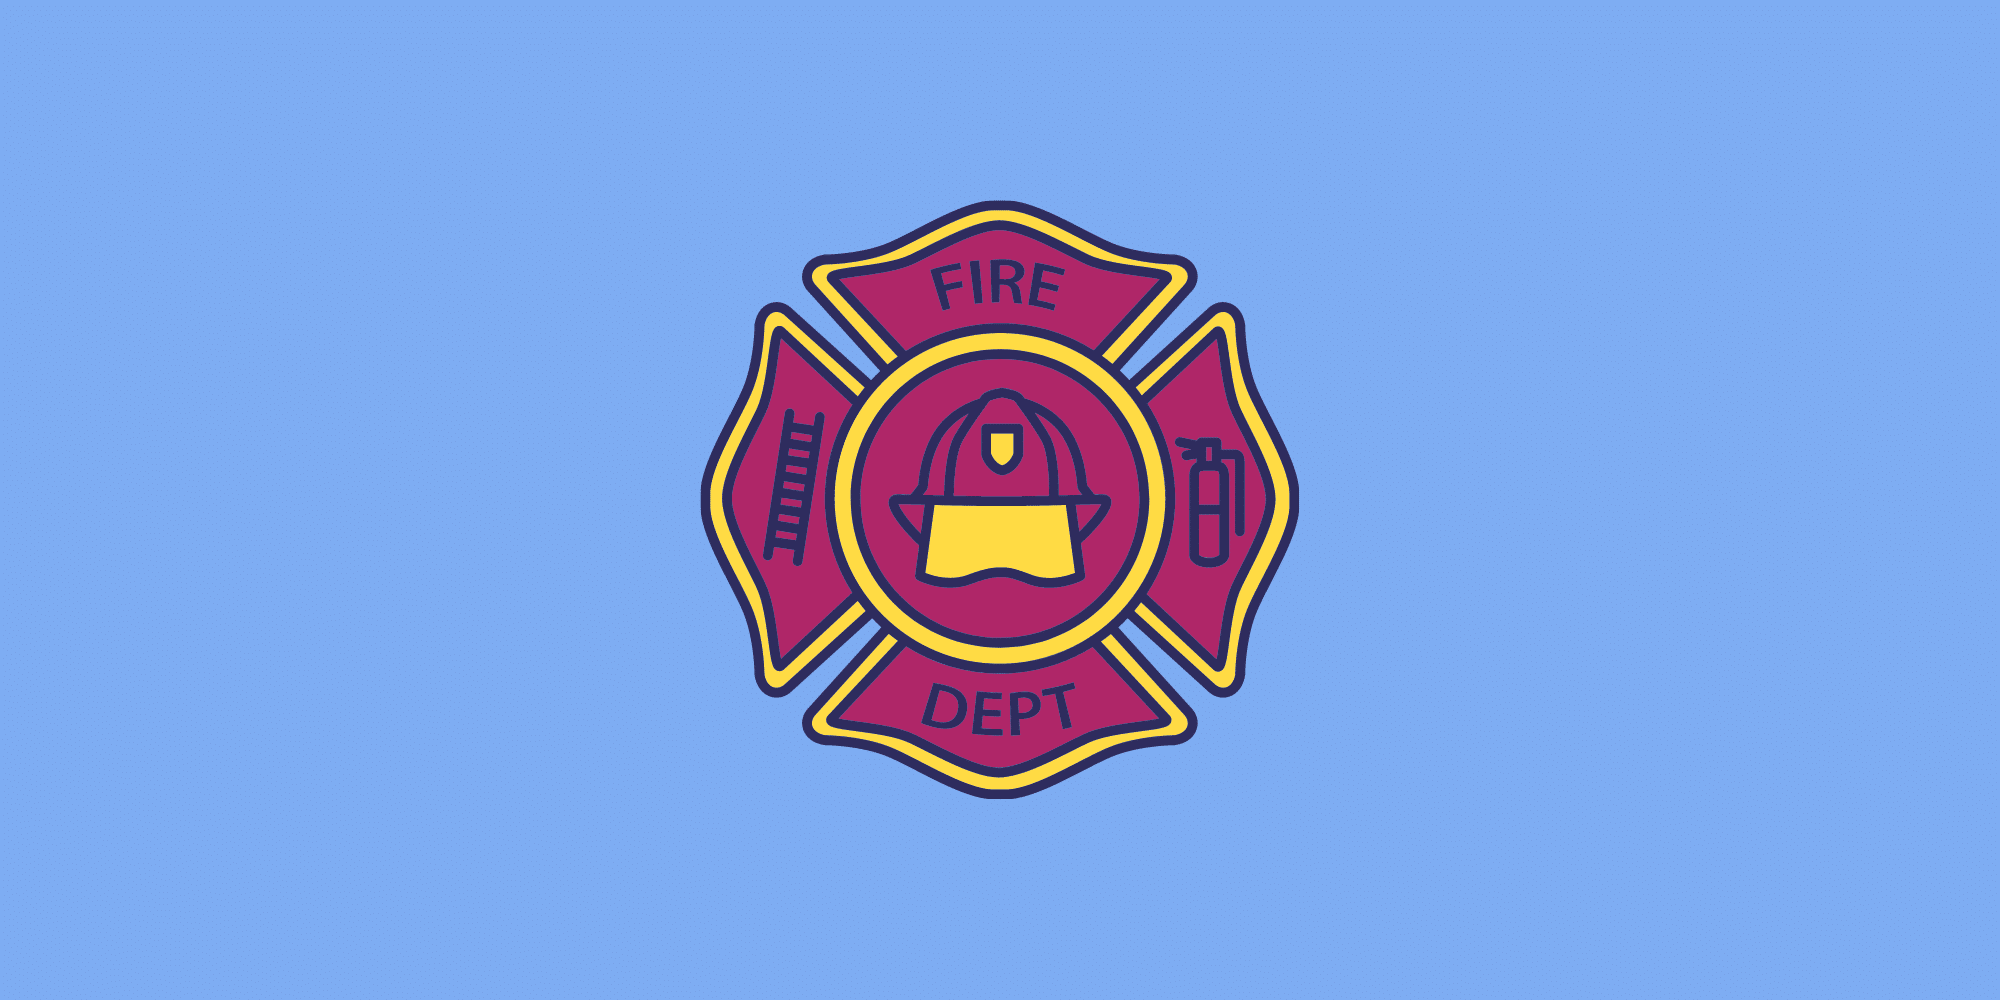 firefighter-gifts